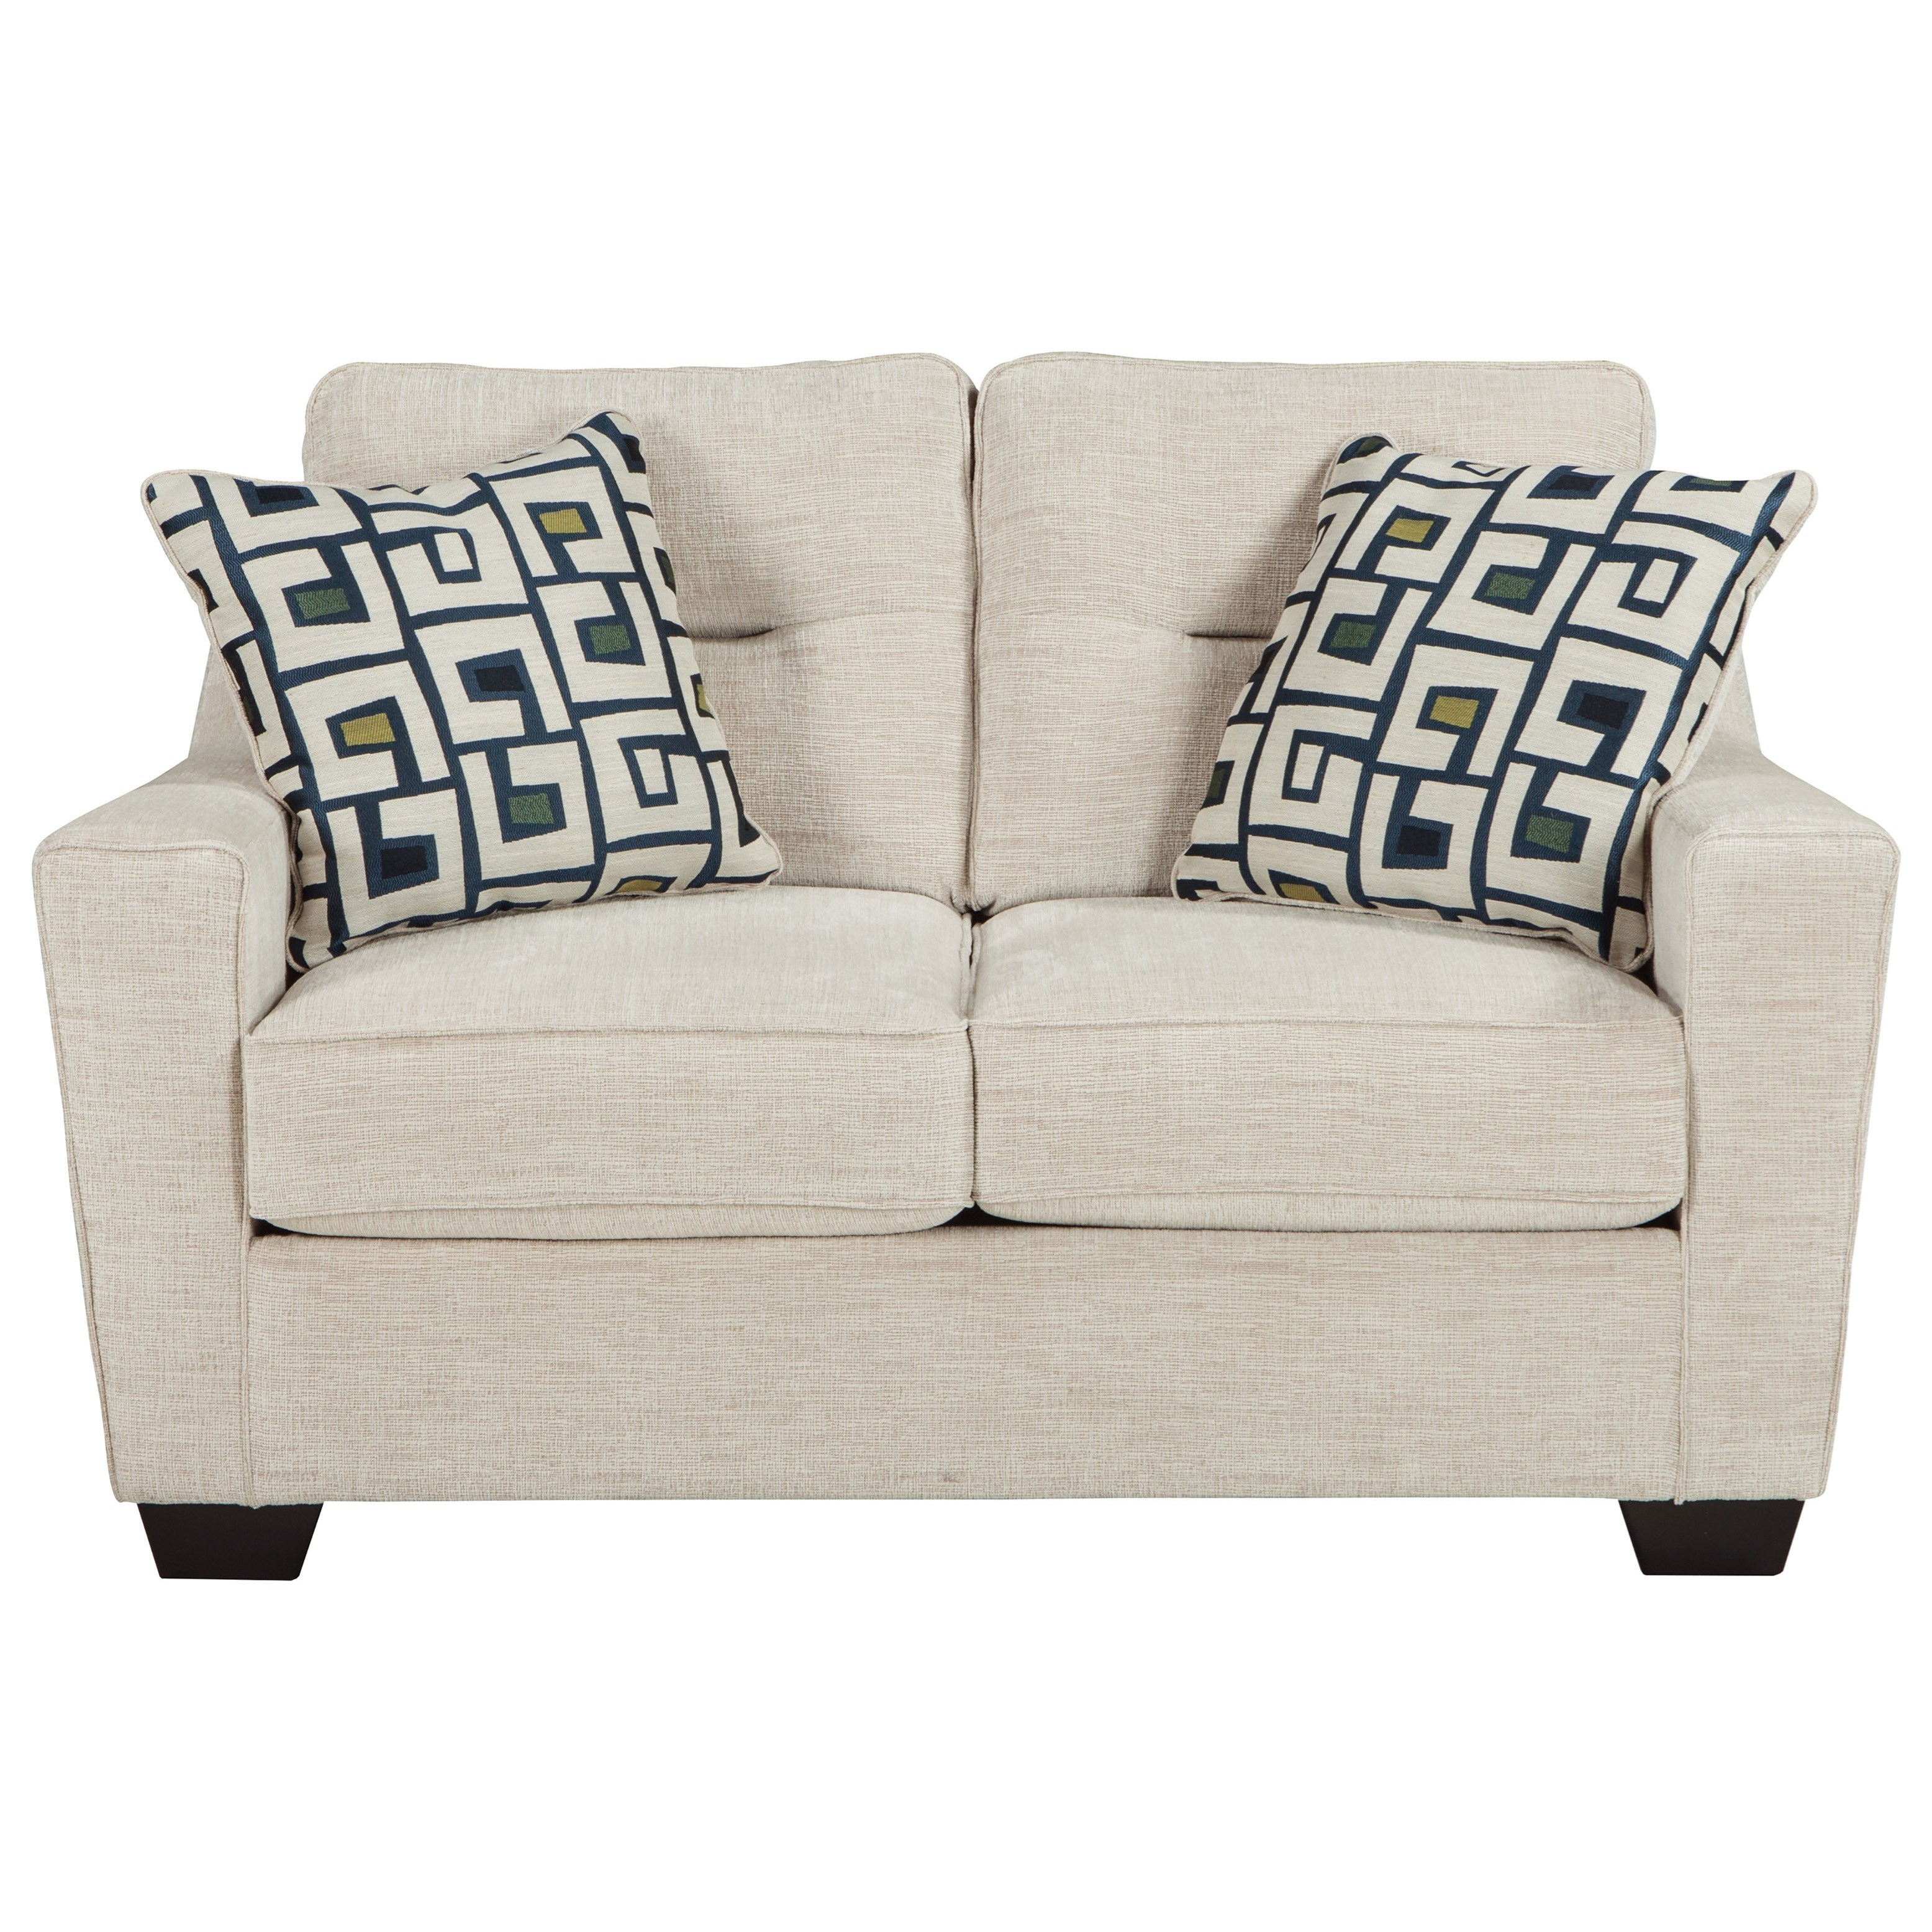 Ashley Furniture Cerdic Contemporary Loveseat with Shaped Track